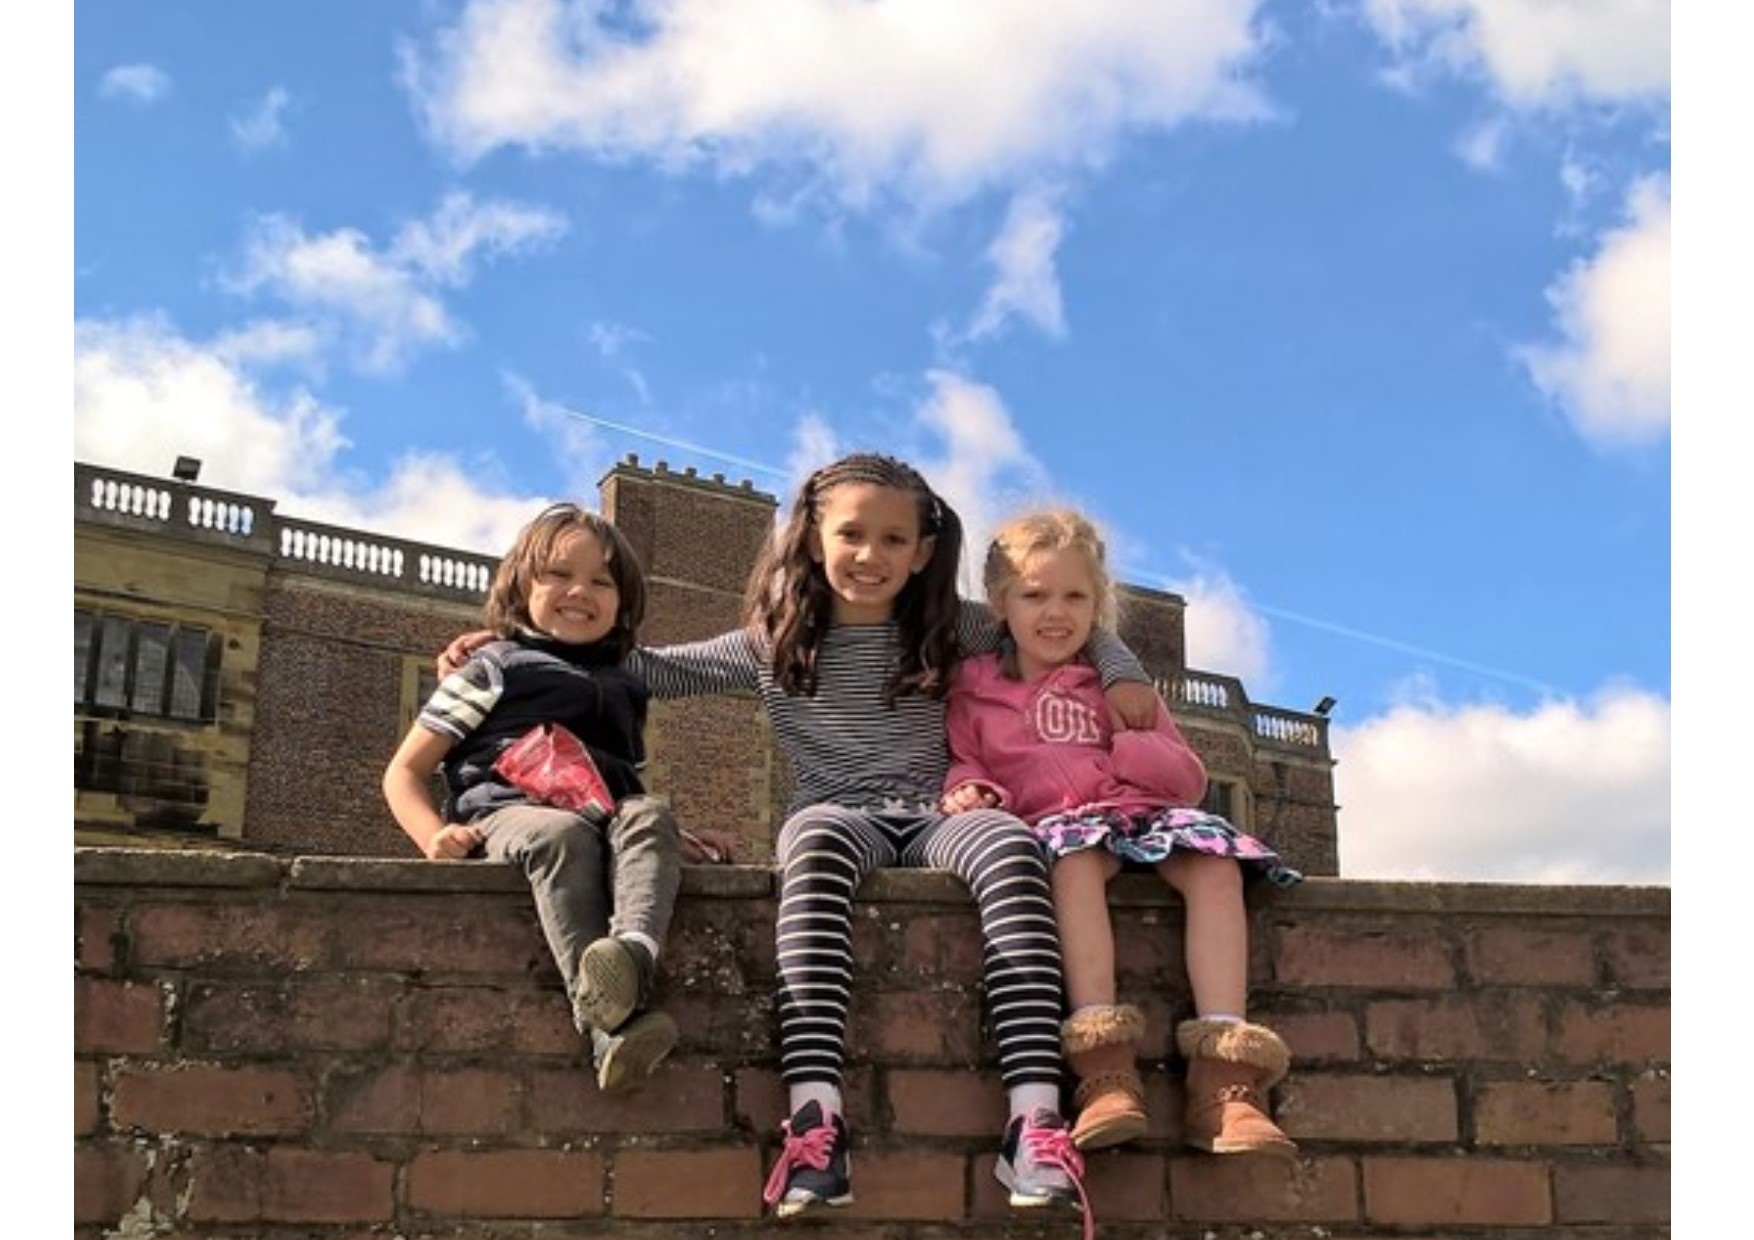 siblings climb on wall in sunshine